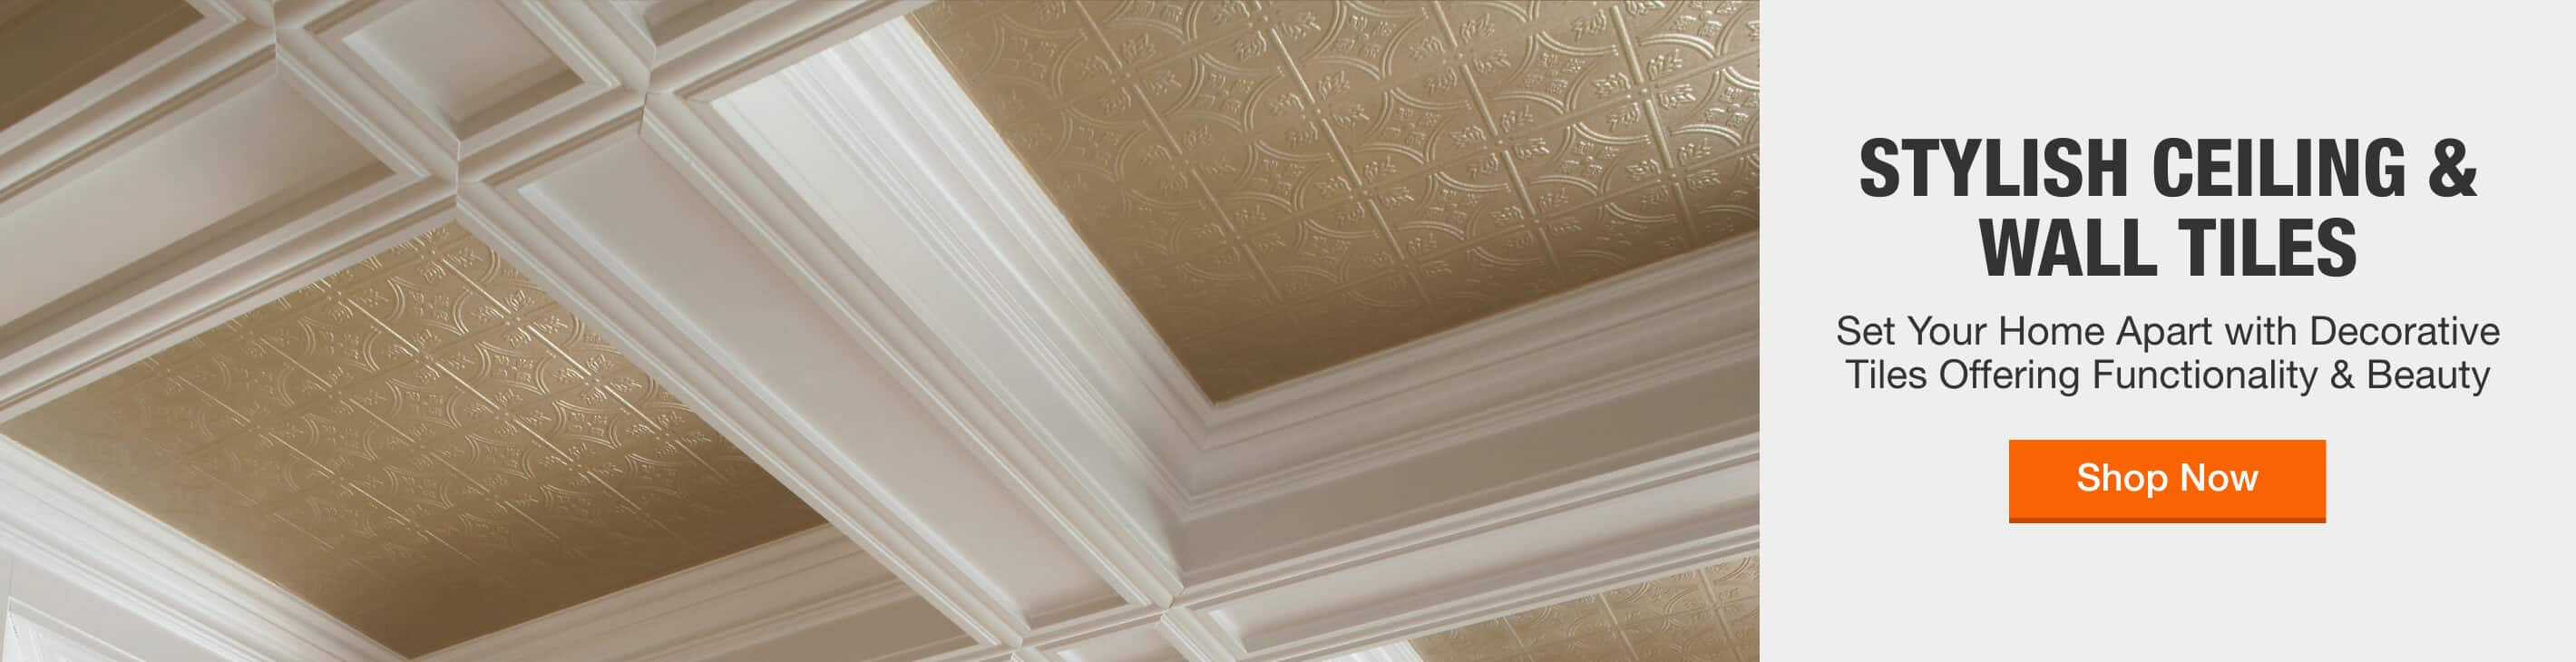 STYLISH CEILING AND WALL TILES - Set your home apart with decorative tiles offering functionality & beauty > Shop Now